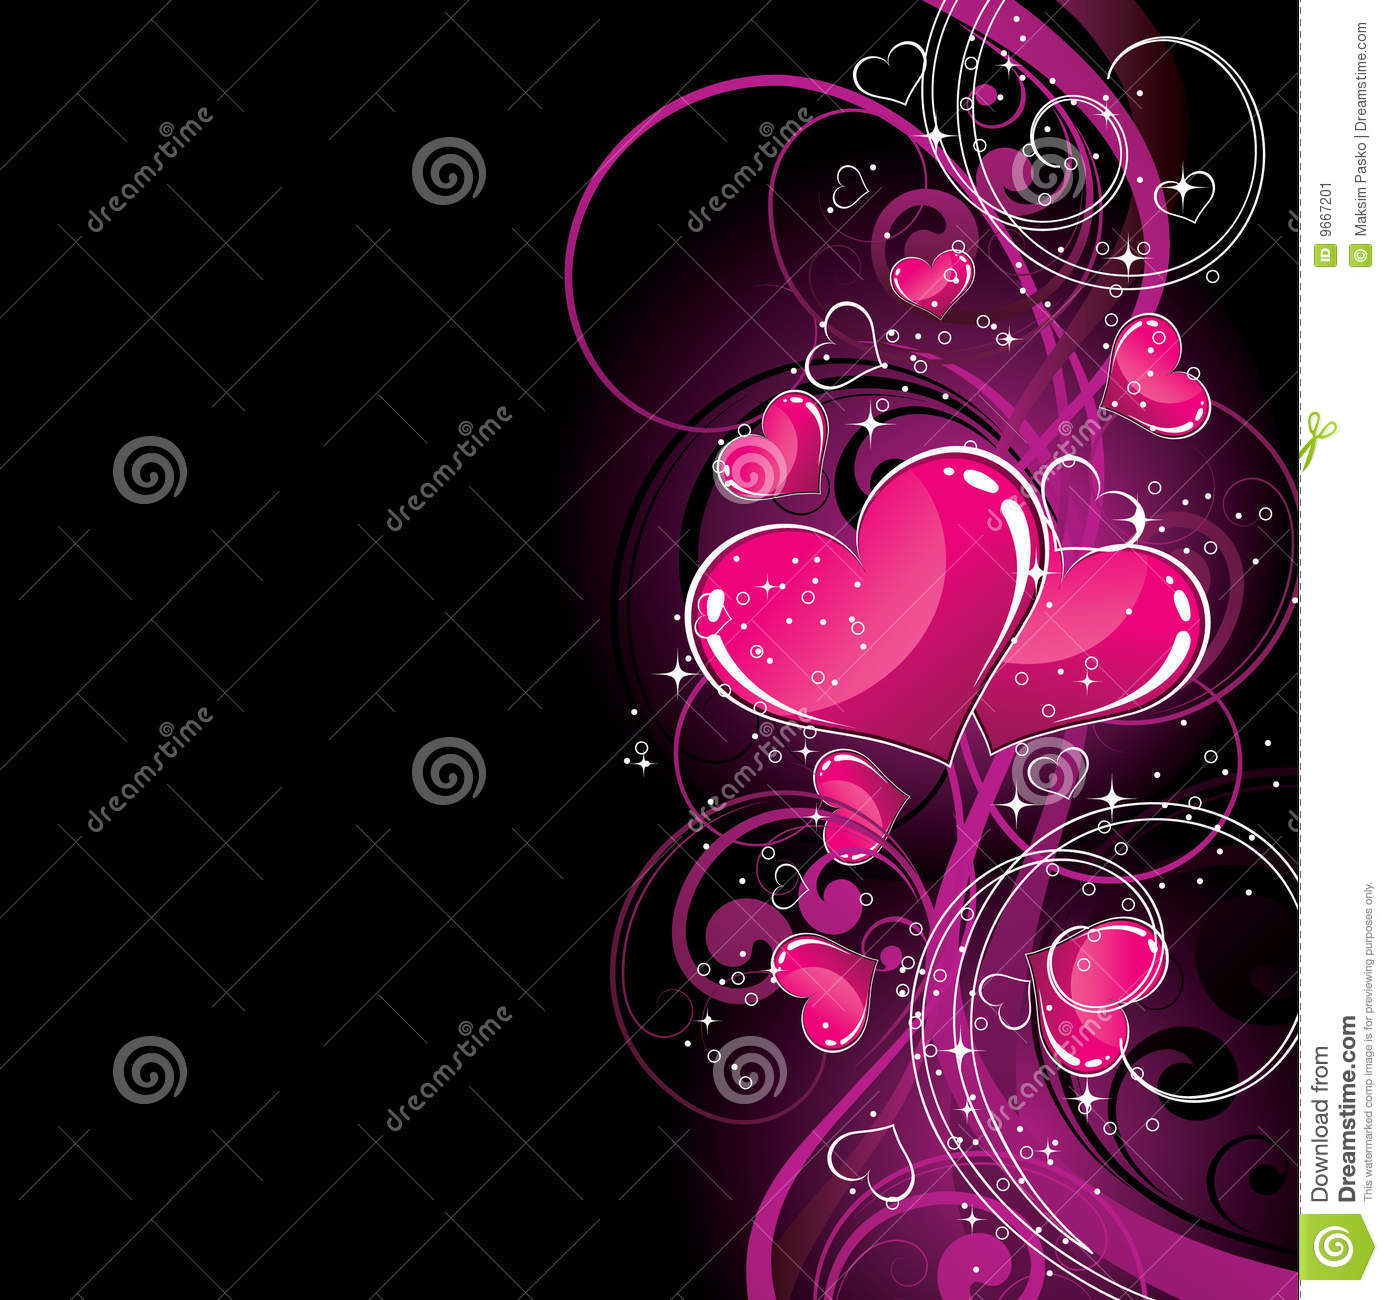 Free Download Black And Pink Hearts Wallpaper Pink Hearts On Black